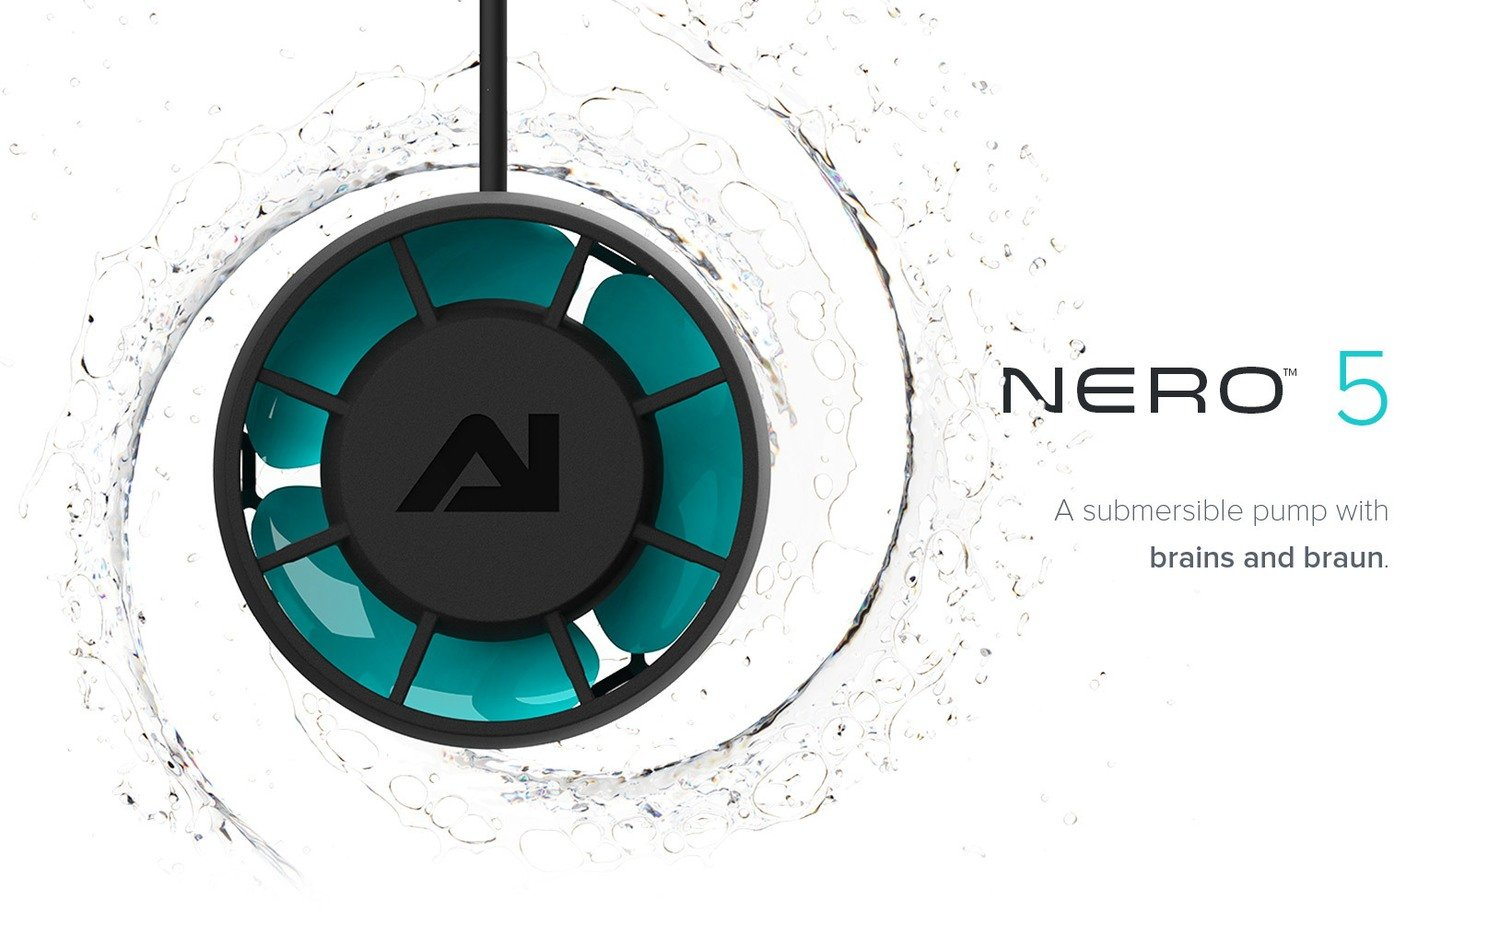 Nero 5 Powerhead (3000 GPH) by AquaIlluminations